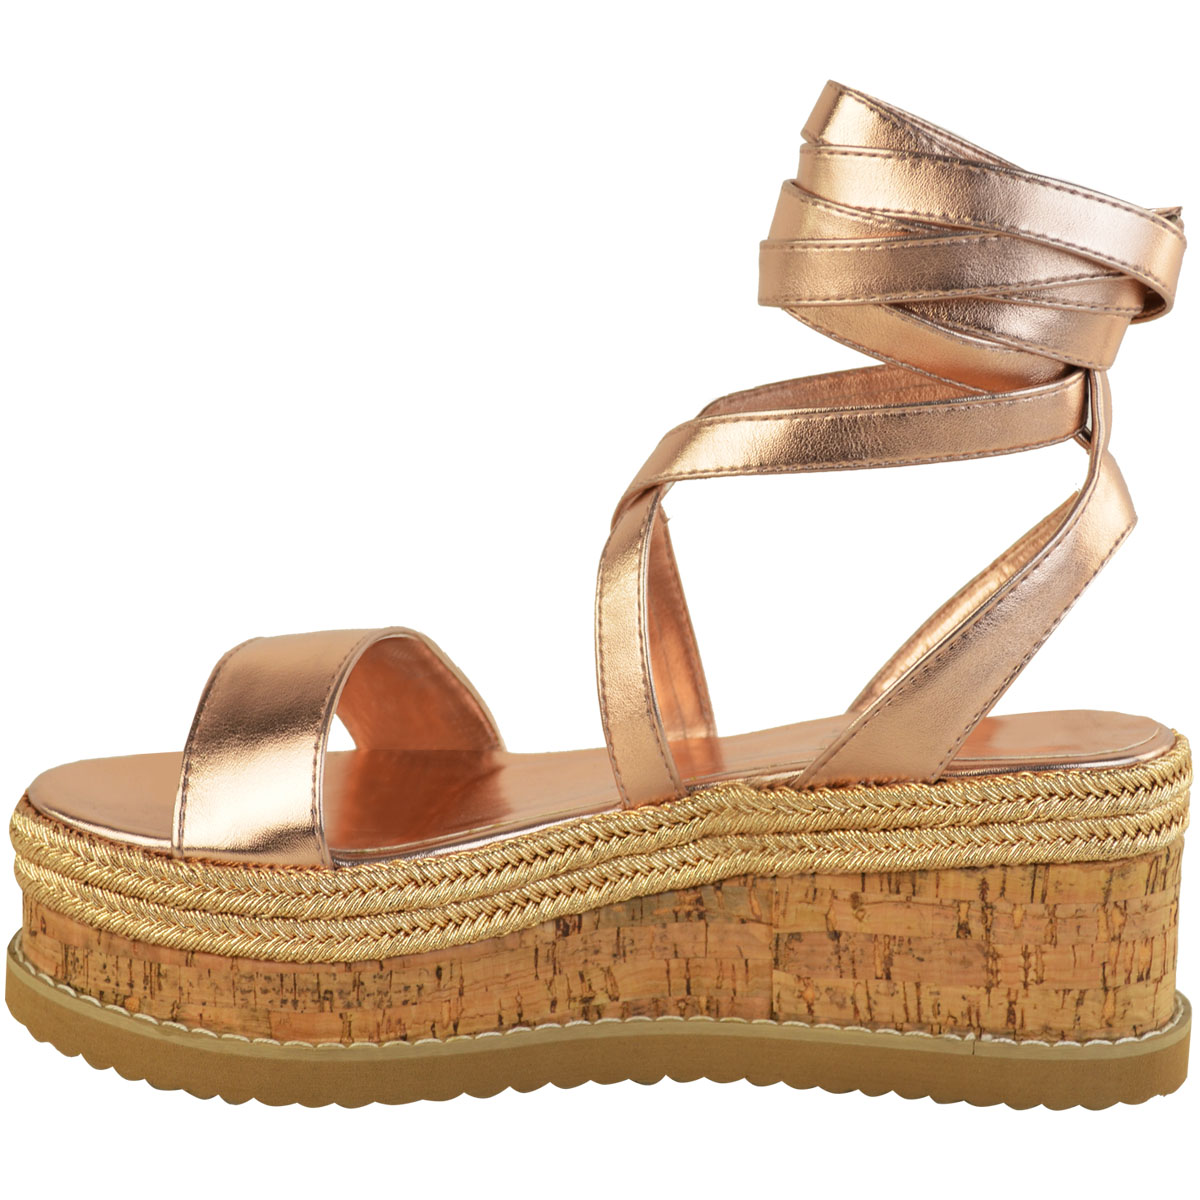 Popular Elena Espadrille  Sandals From Spanish Brand Casta&241er Crafted From Supple Suede Uppers With Contrast Embroidered Detailing For A Subtle Moccasin Influence, The Flat Sandals Feature A Buckled Ankle Strap And Closed Toe Silhouette Set